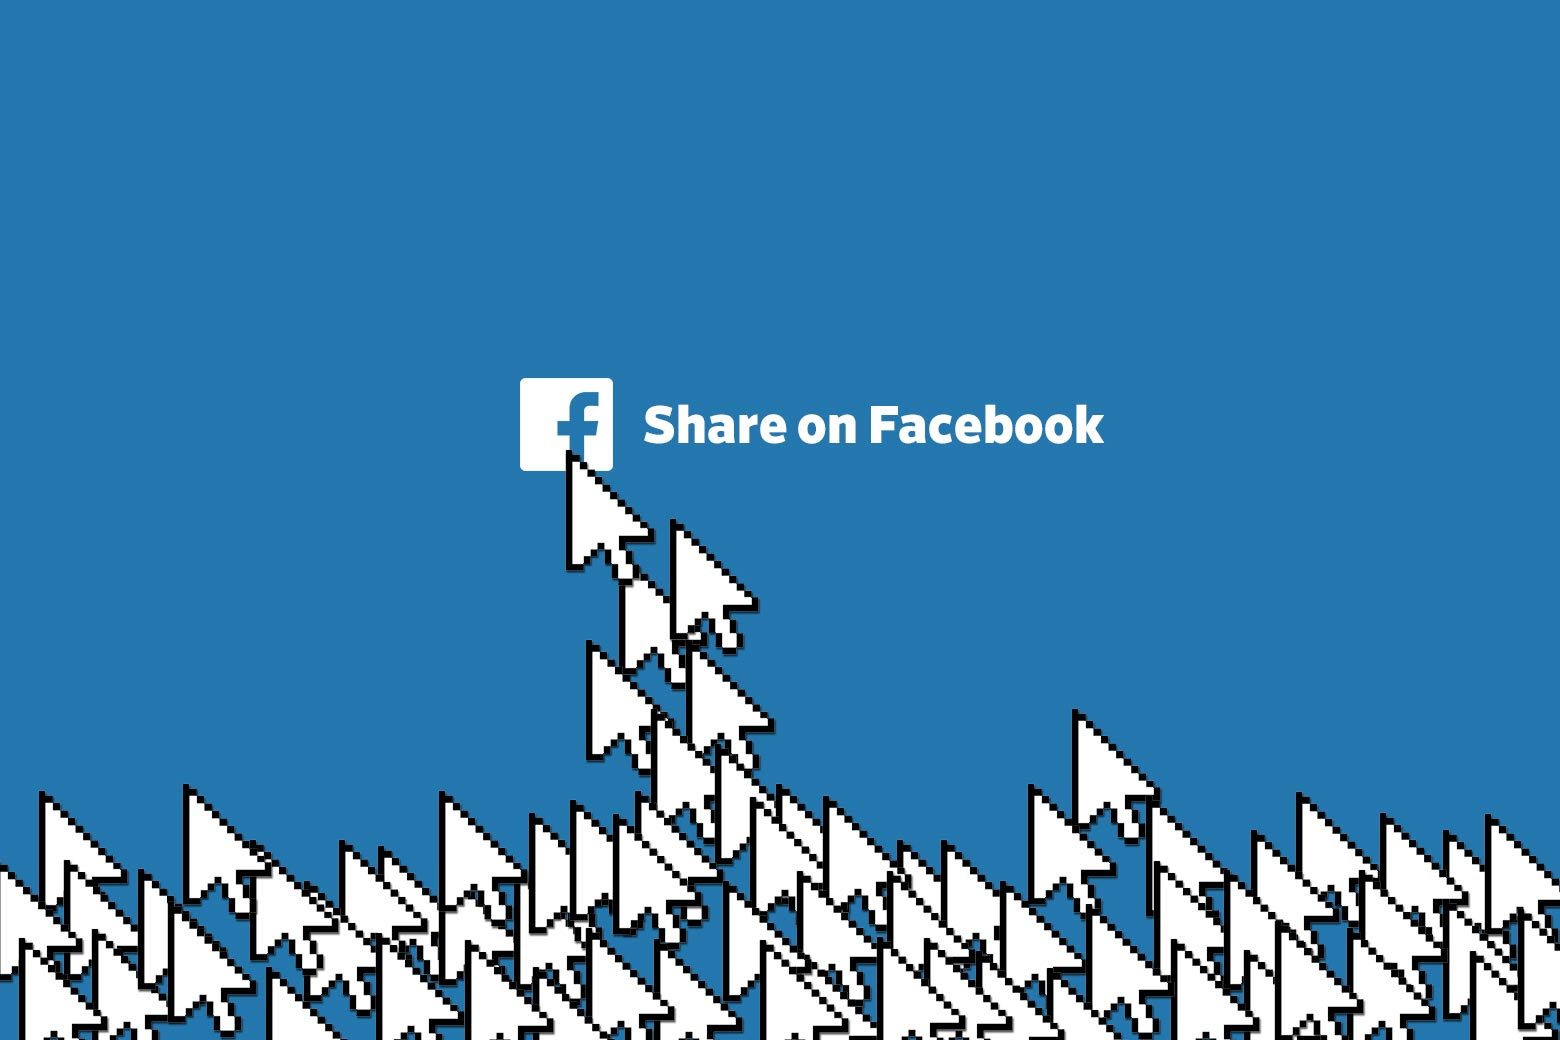 """A bunch of arrow icons clicking on """"Share on Facebook."""""""